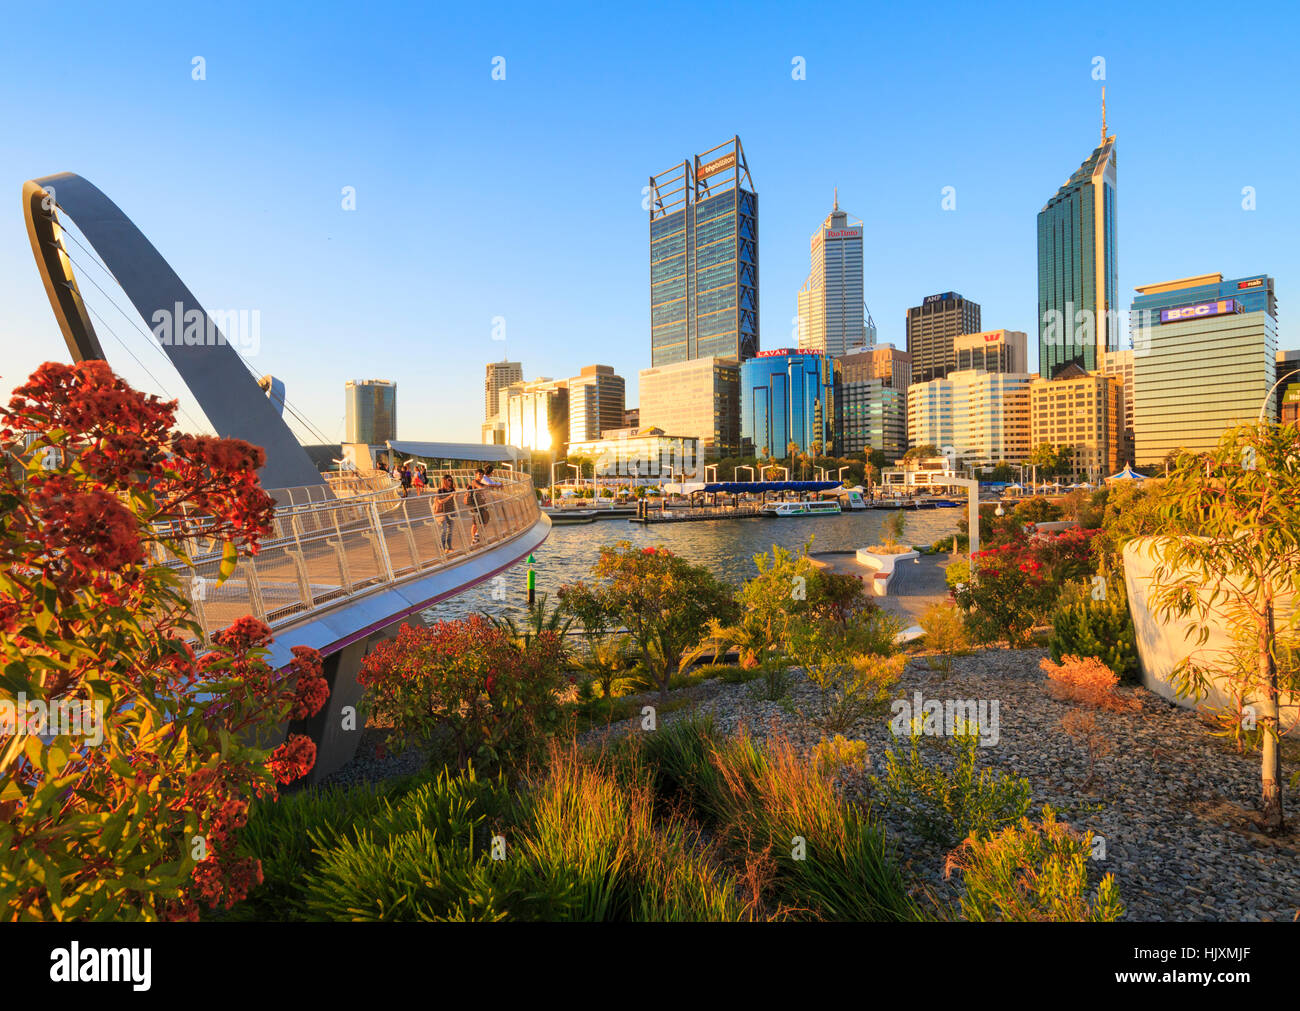 Native plants growing at Elizabeth Quay. - Stock Image